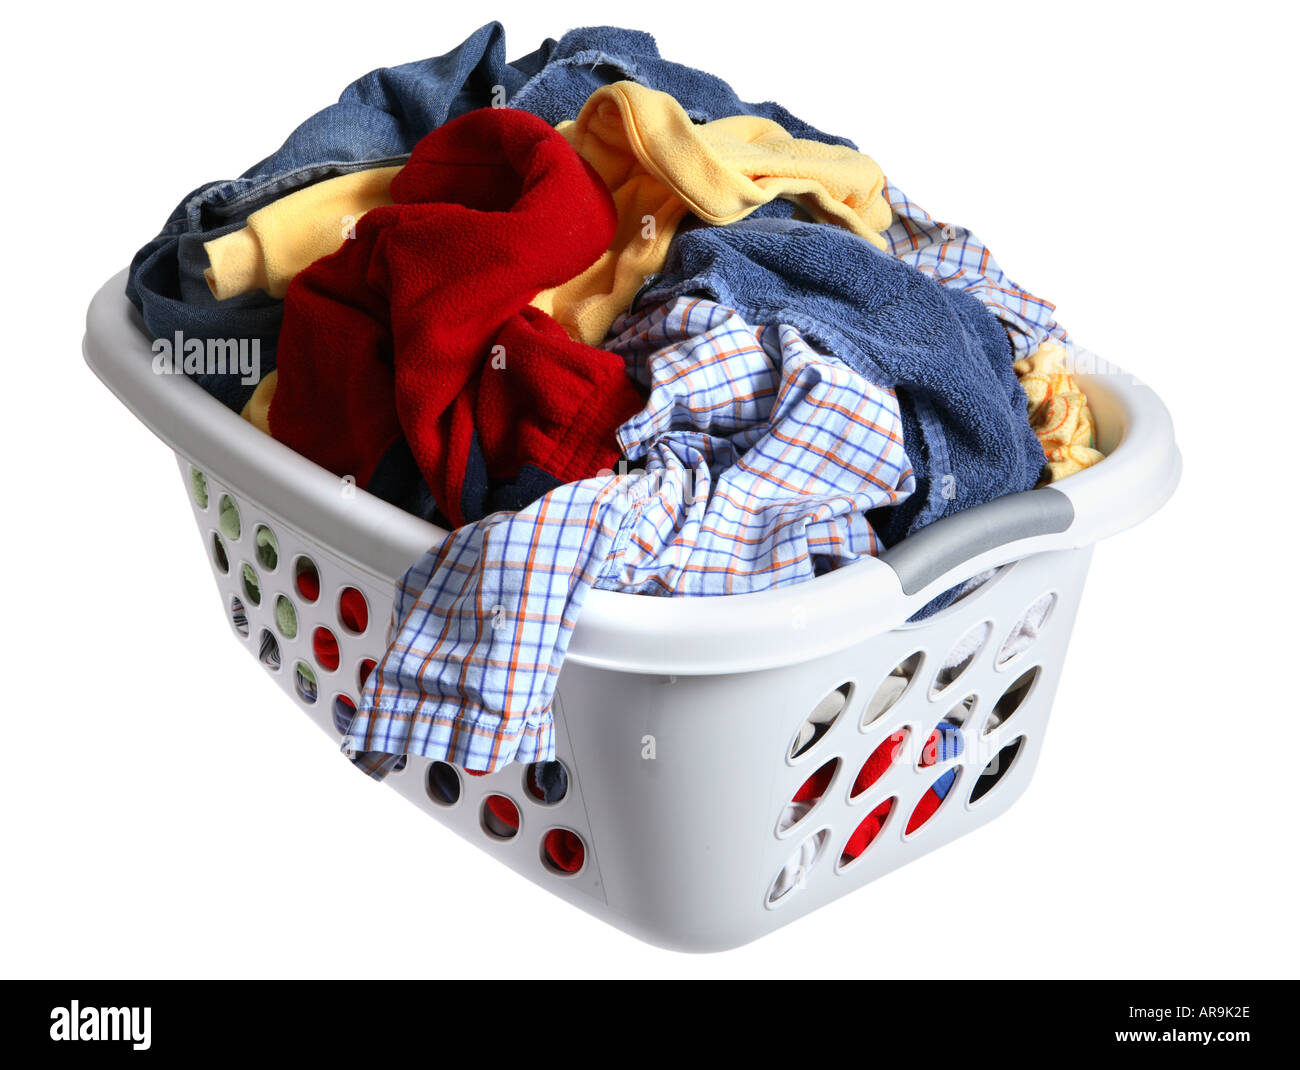 Dirty Laundry Baskets Laundry Basket Full Of Dirty Clothes Stock Photo 5218093